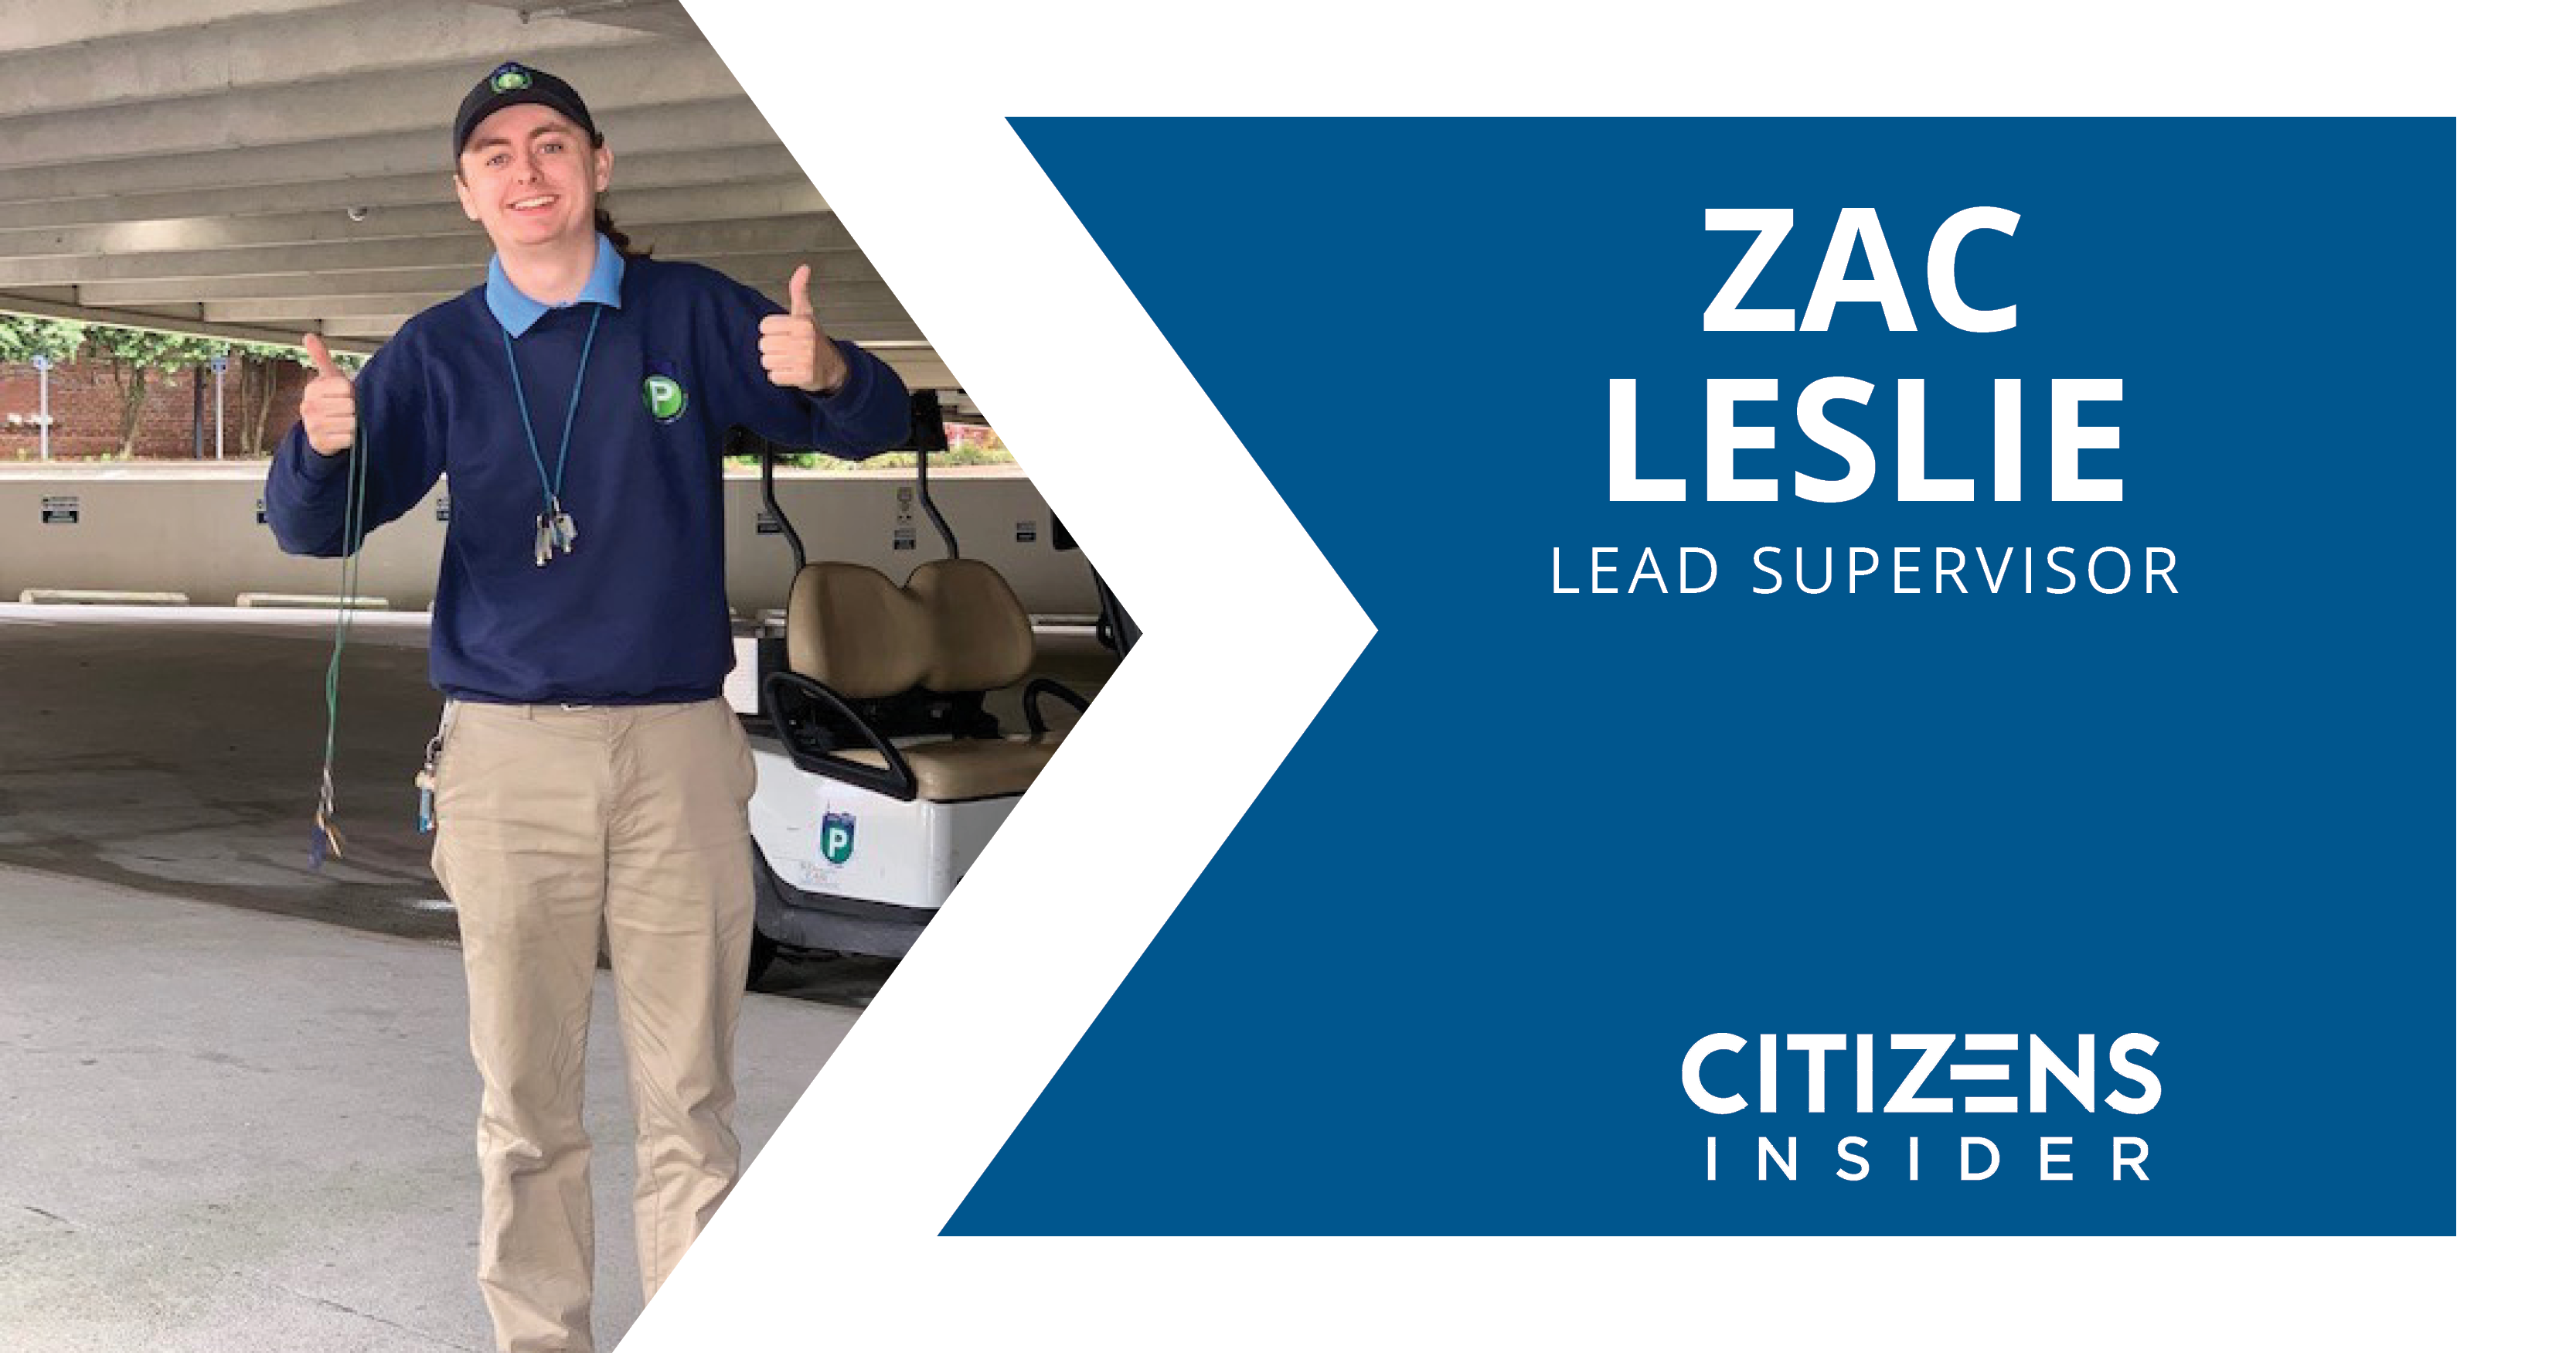 Citizens Insider: Zac Leslie